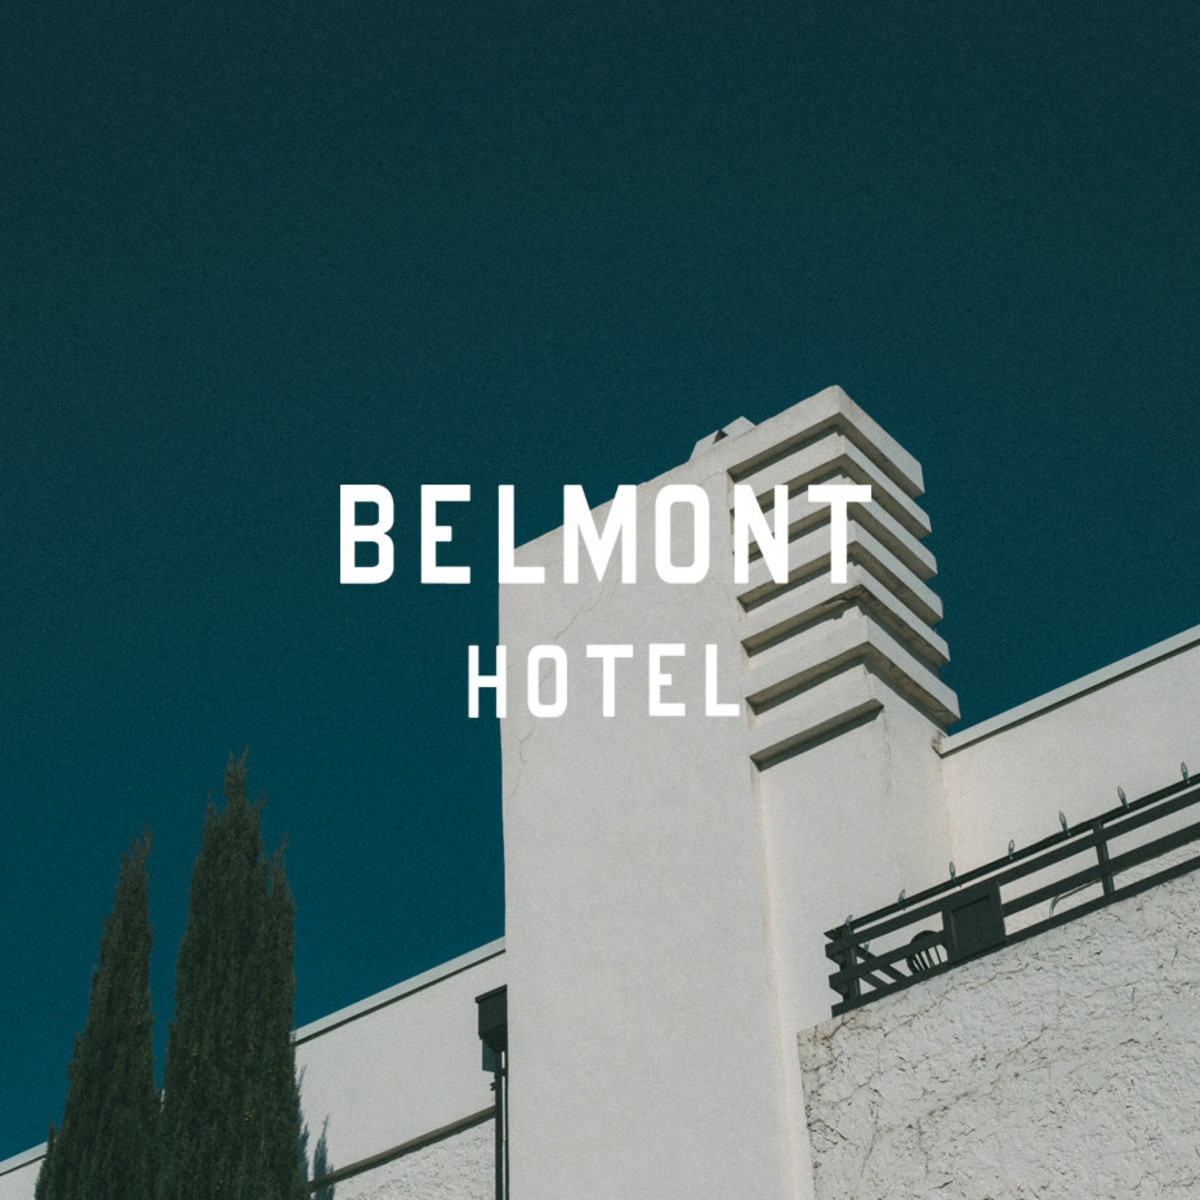 Belmont Hotel in Dallas